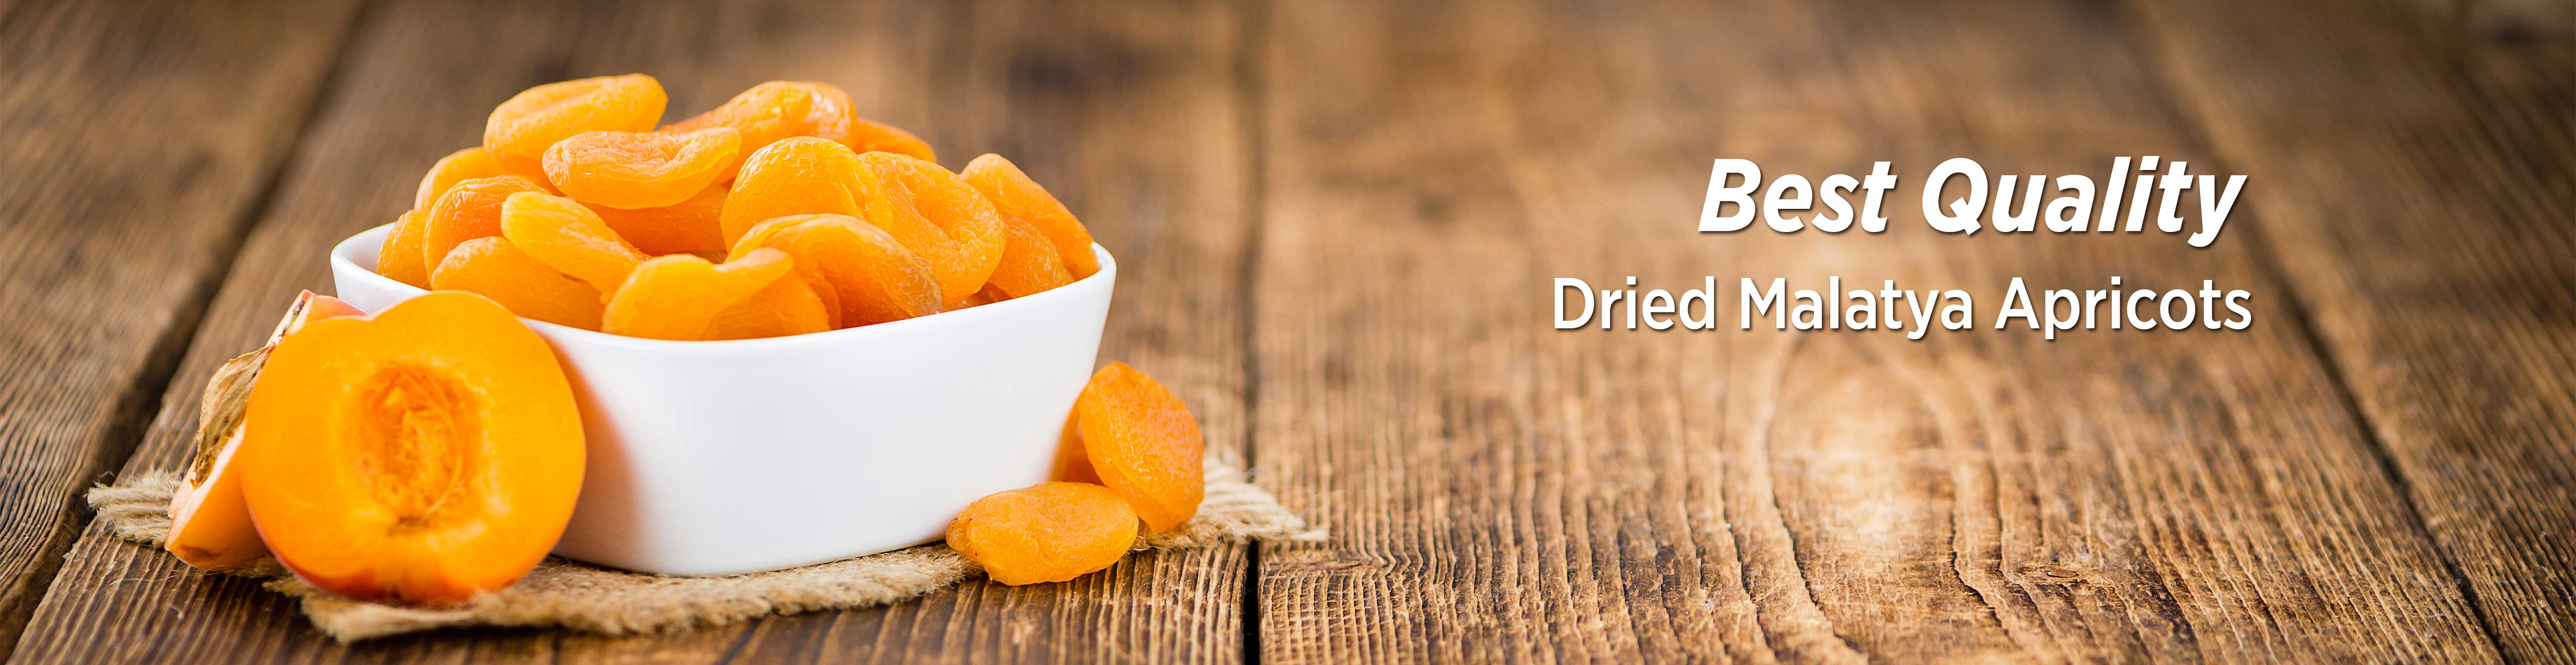 DAG FOOD-Dried Apricots Turkey, Dried Fruits and Dried Apricots Export